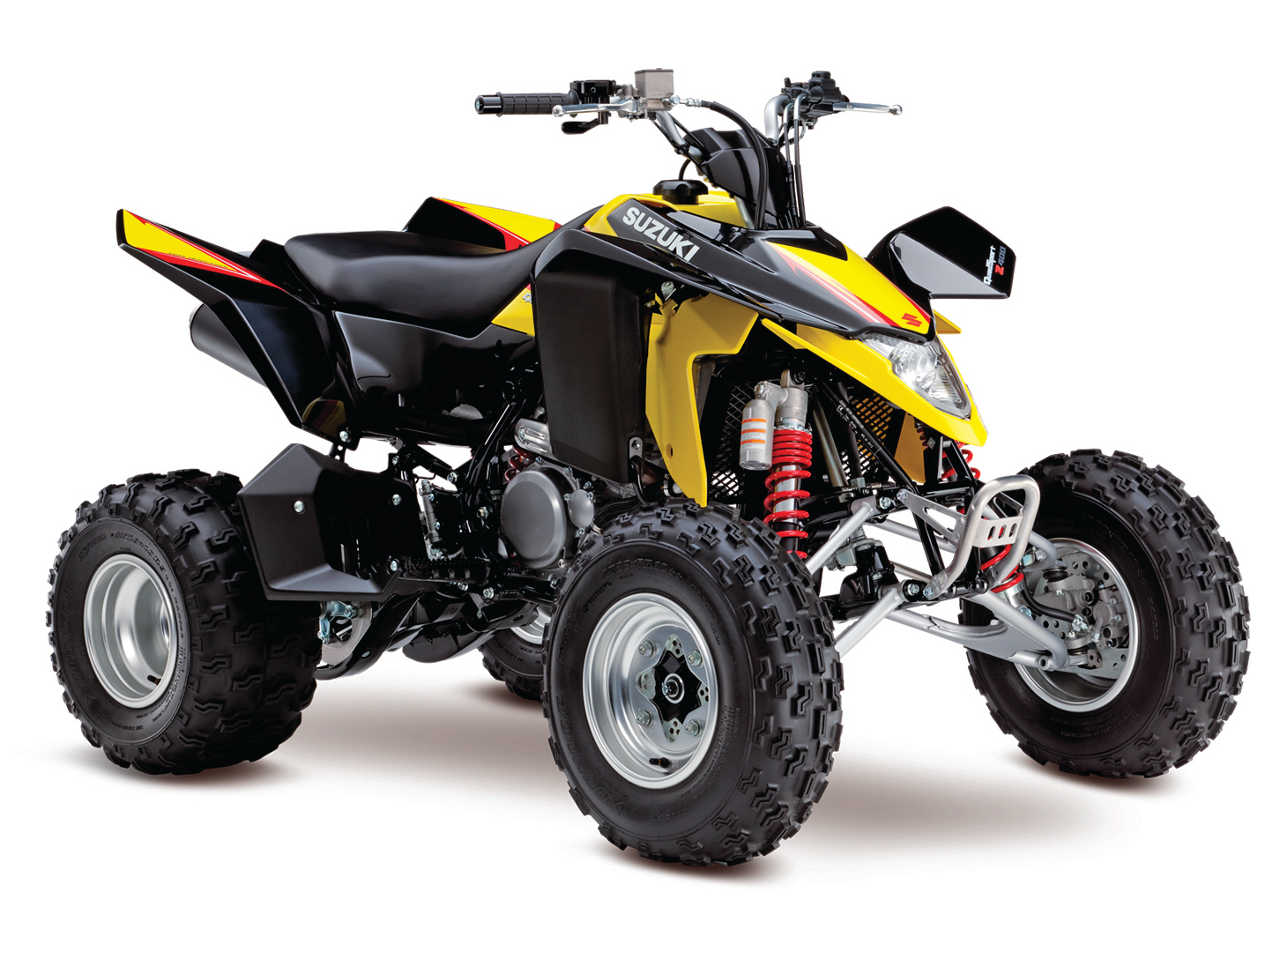 track field ready the suzuki 2014 atv lineup atv illustrated. Black Bedroom Furniture Sets. Home Design Ideas